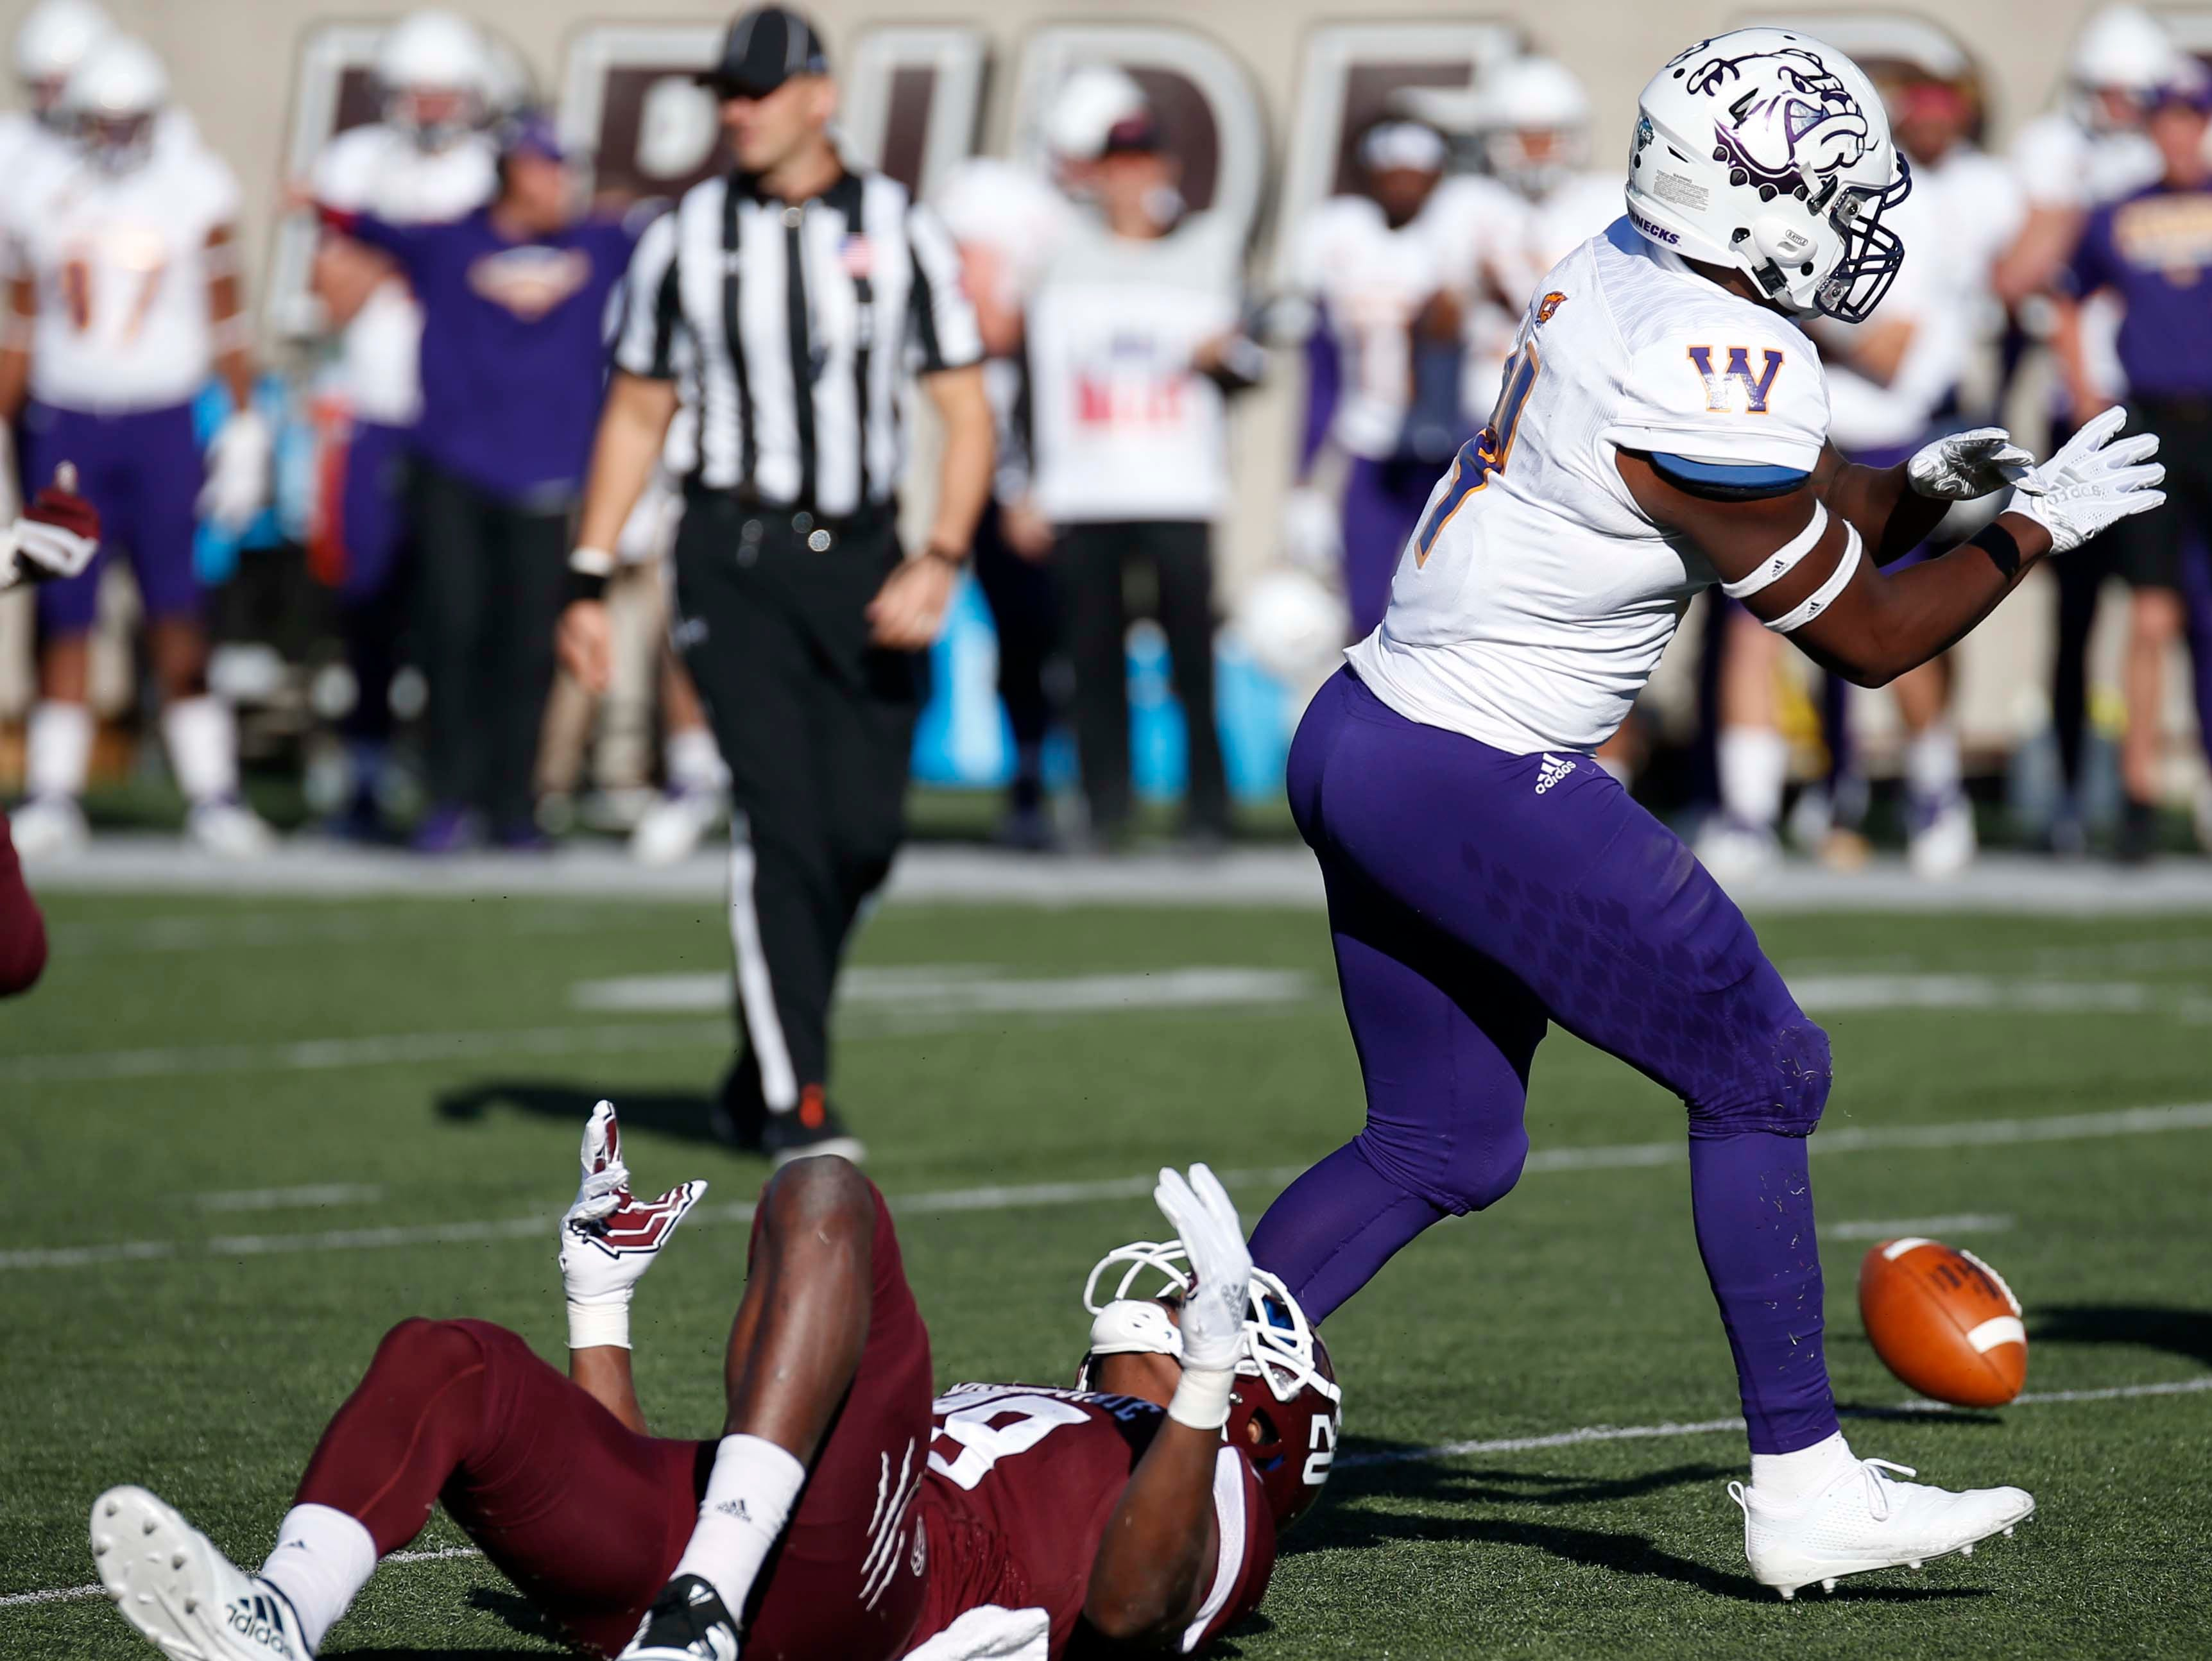 Missouri State's Antwan Woods lies on the field after missing a catch against Western Illinois at Plaster Field in Springfield on Oct. 20, 2018.